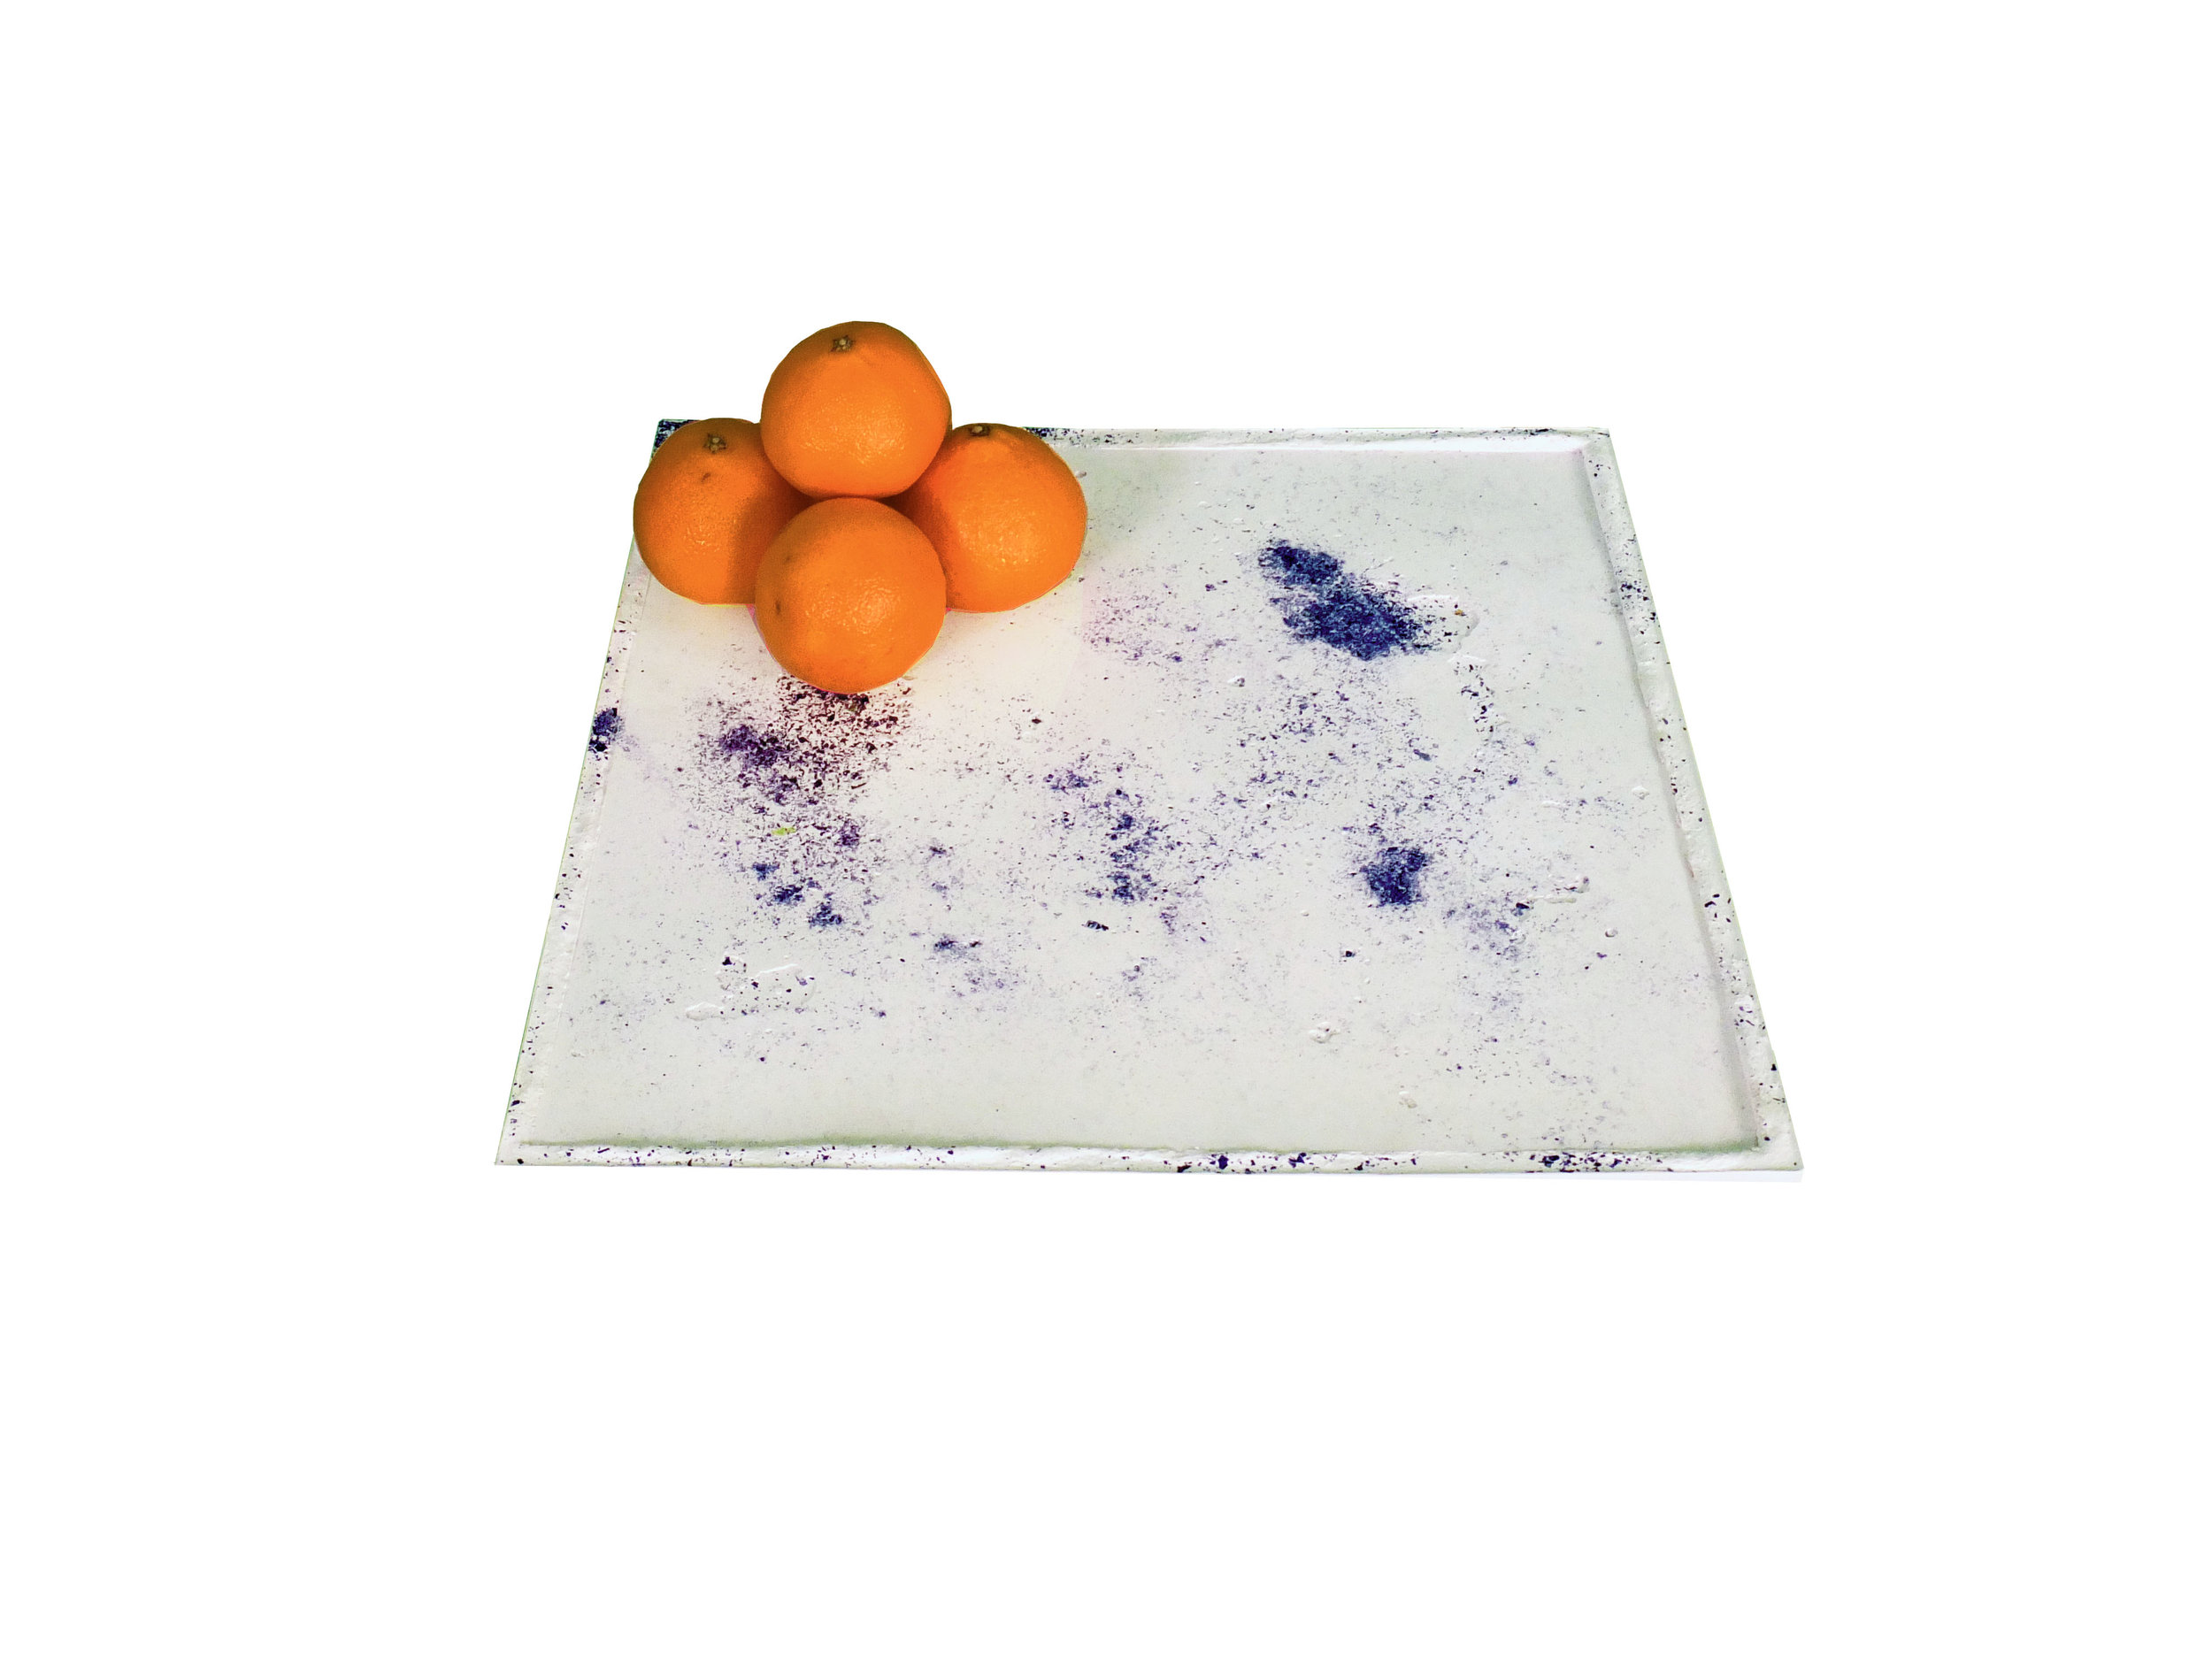 Blue concrete tray with oranges